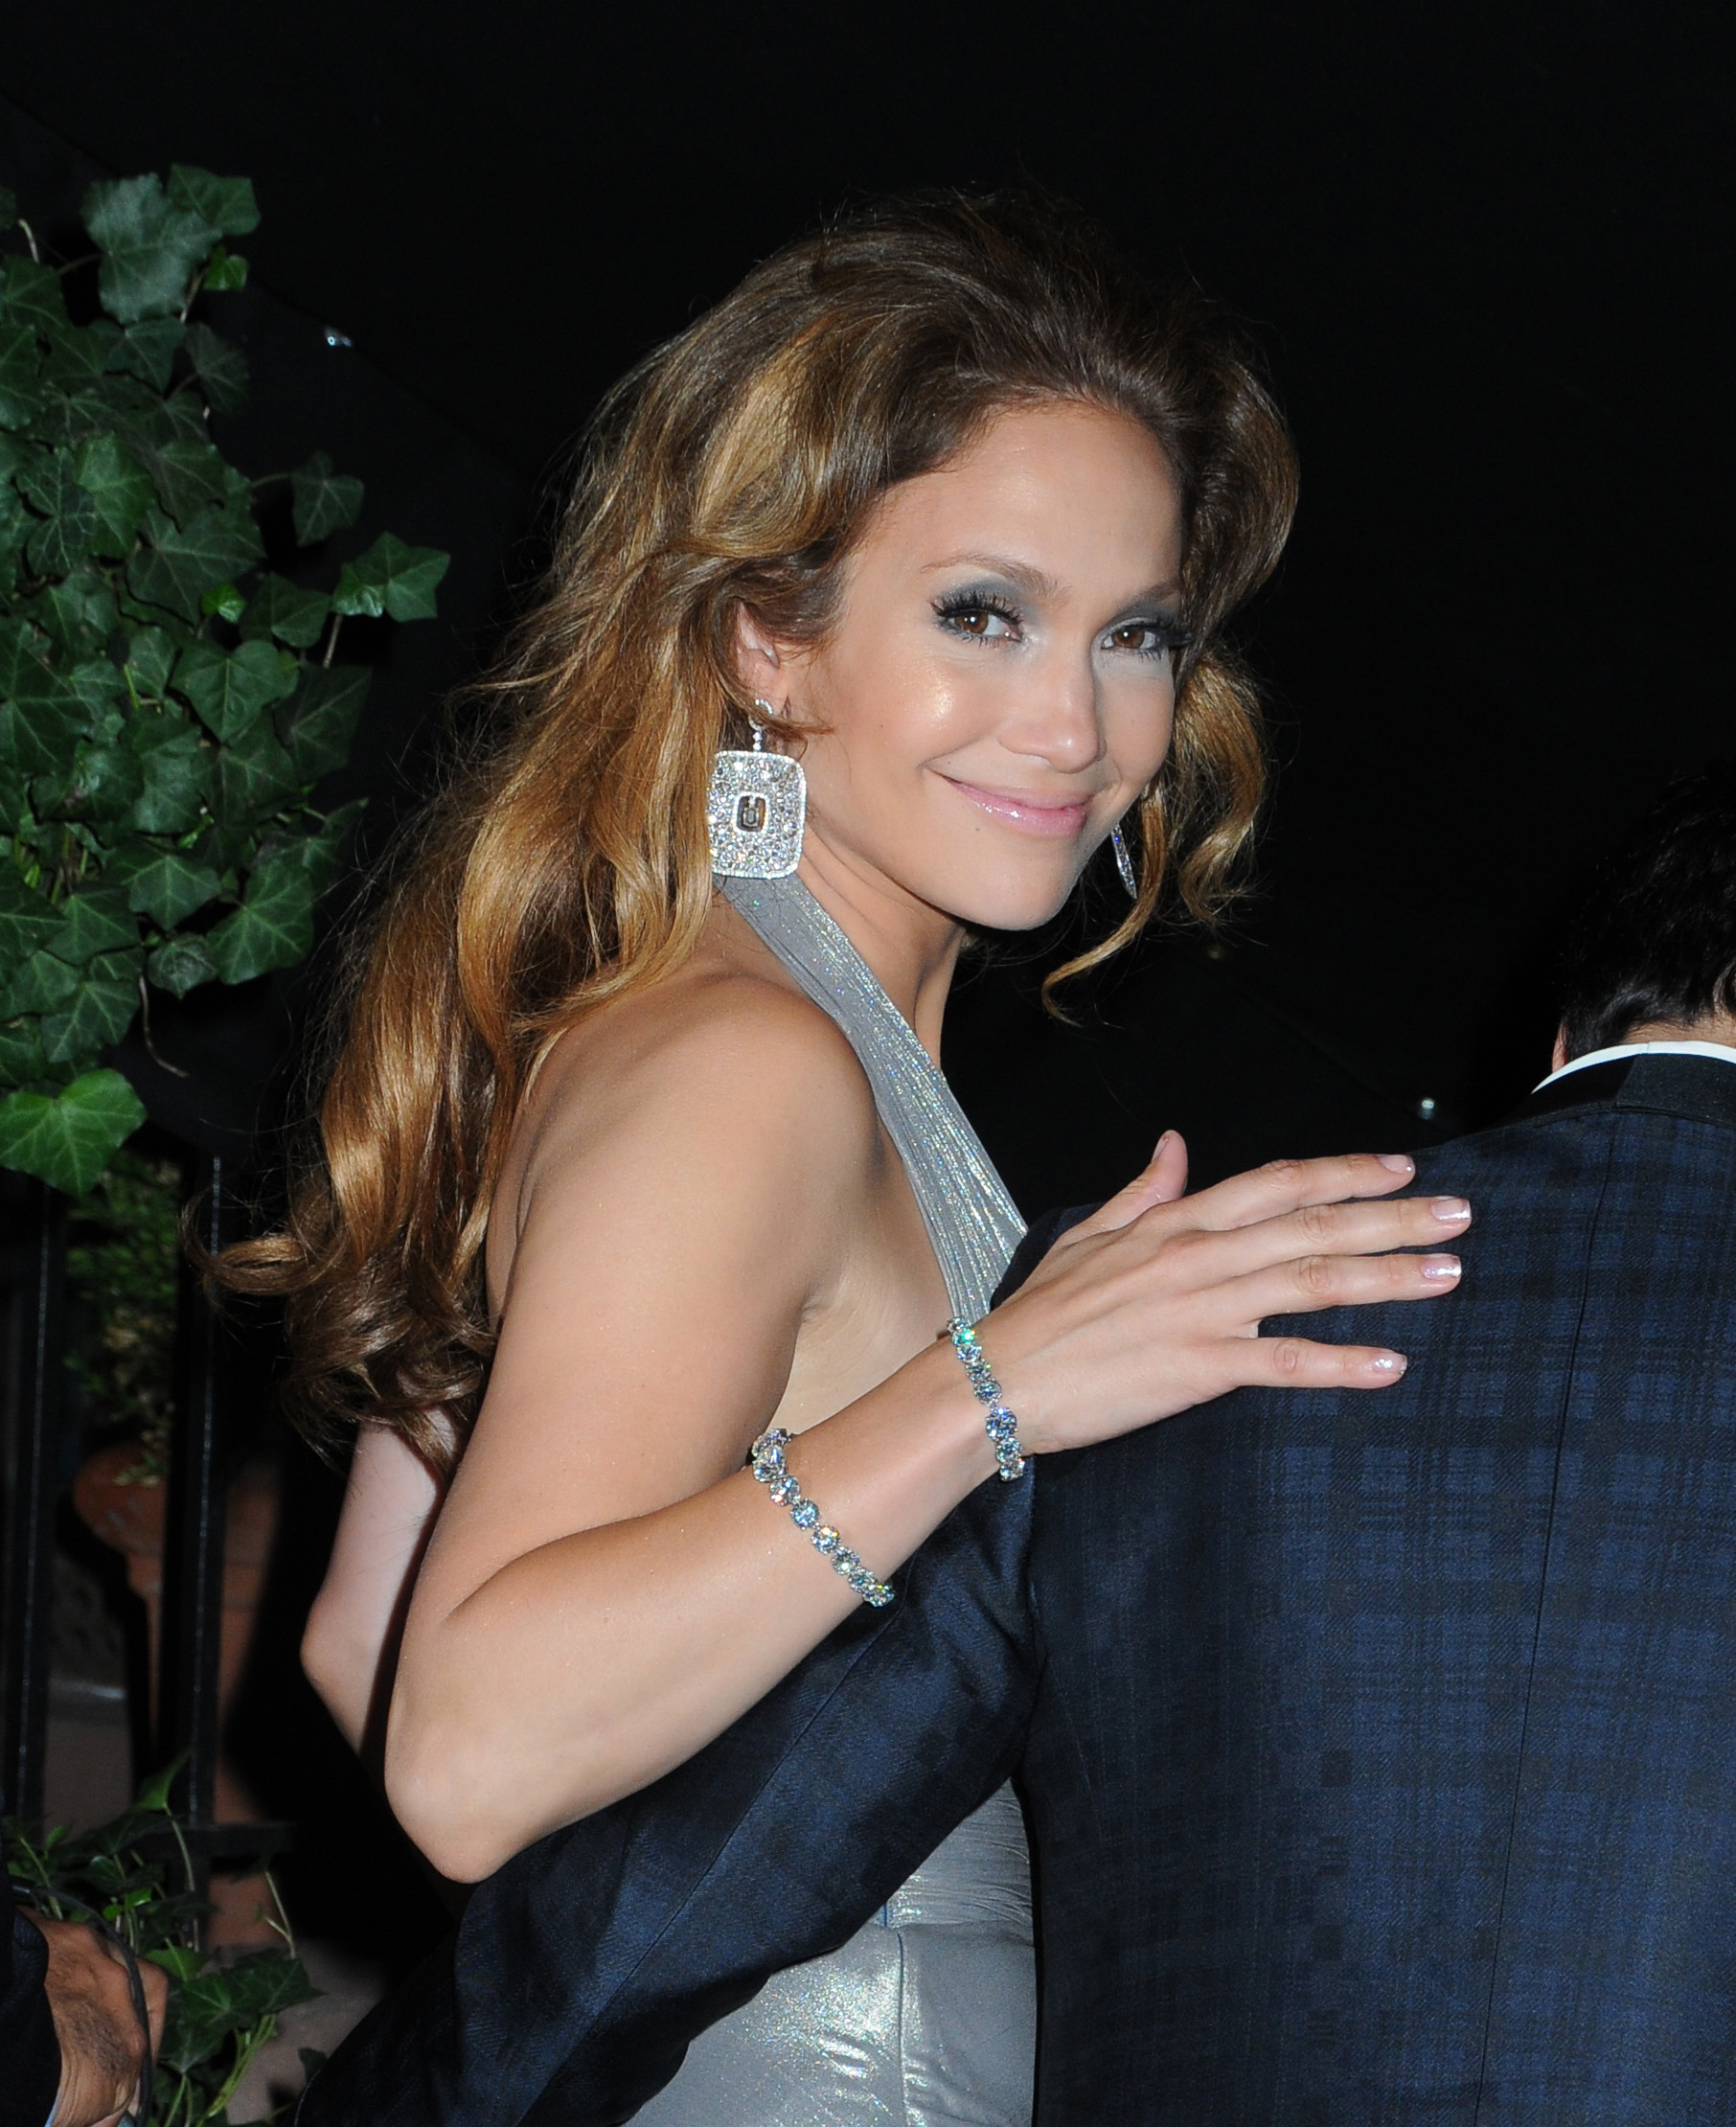 http://jennifer-lopezz.narod.ru/images/news/jennifer-lopez-40-birthday_09_09_2009_5.jpg